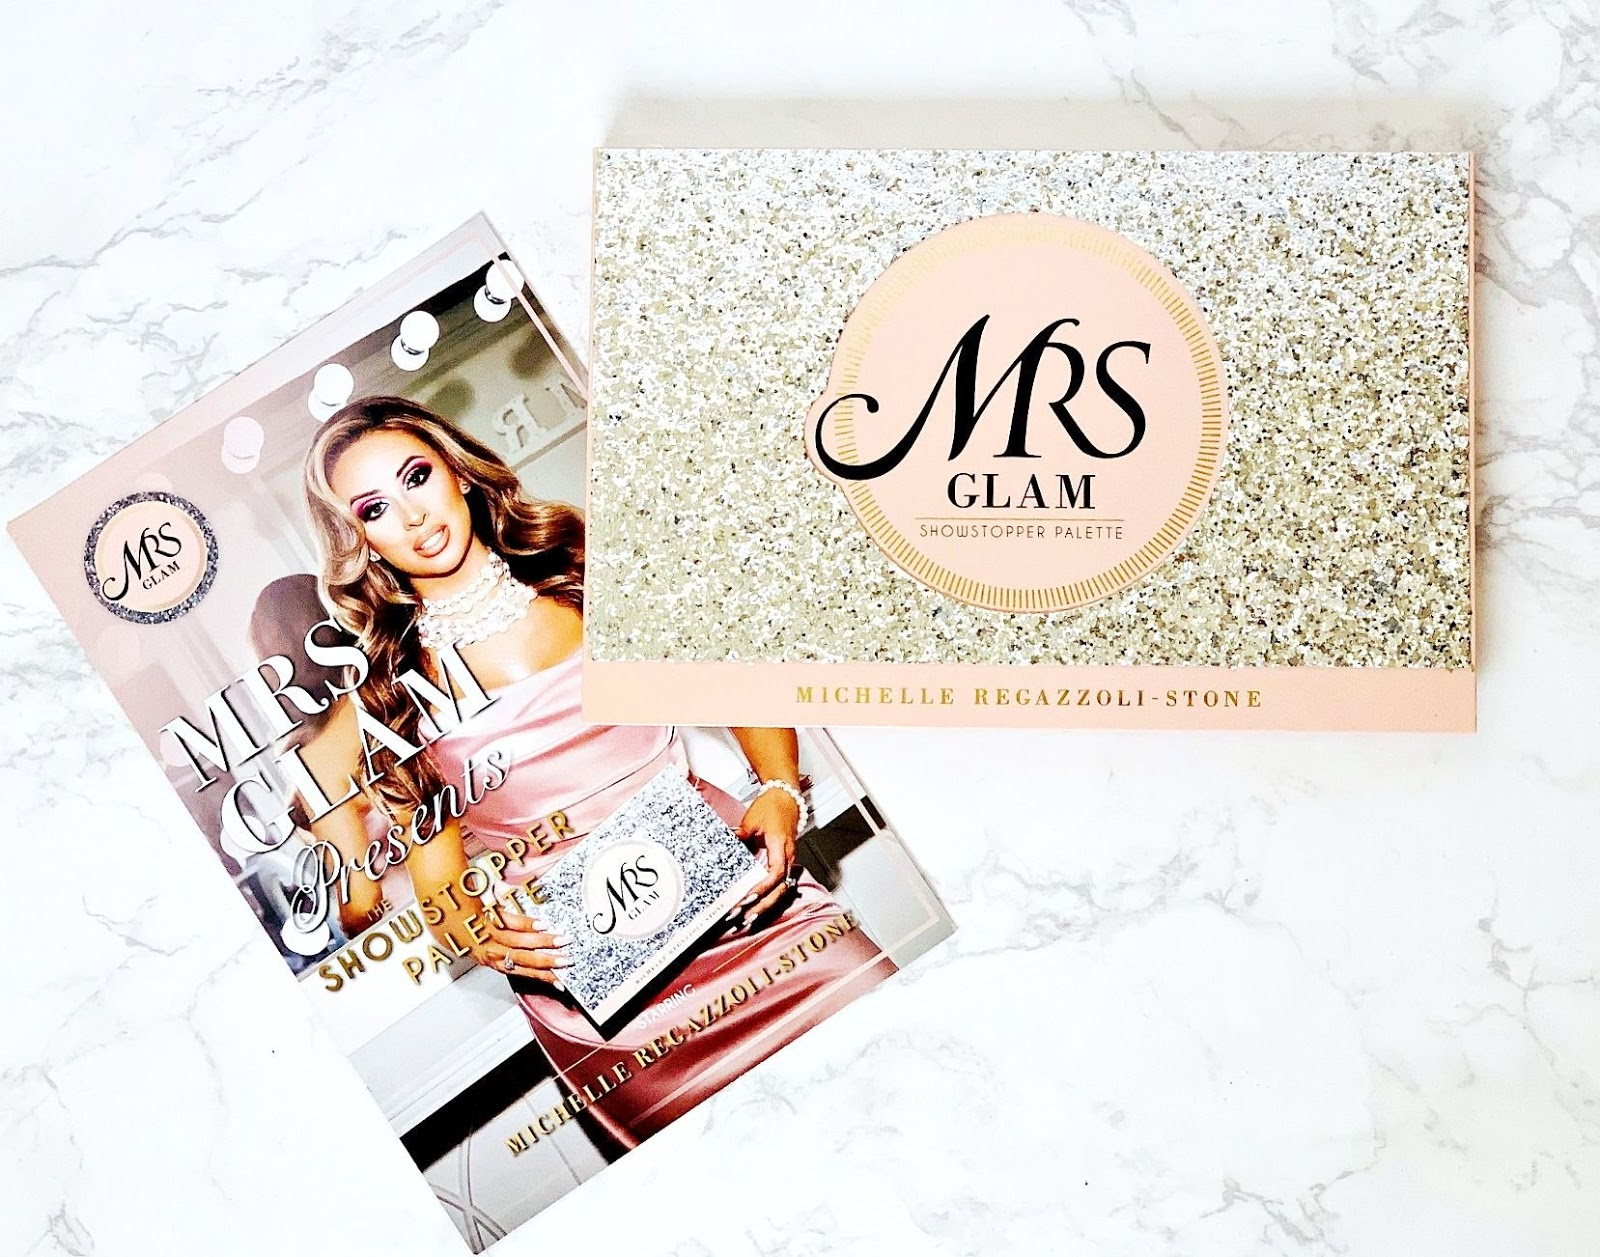 Mrs Glam Showstopper Palette Review